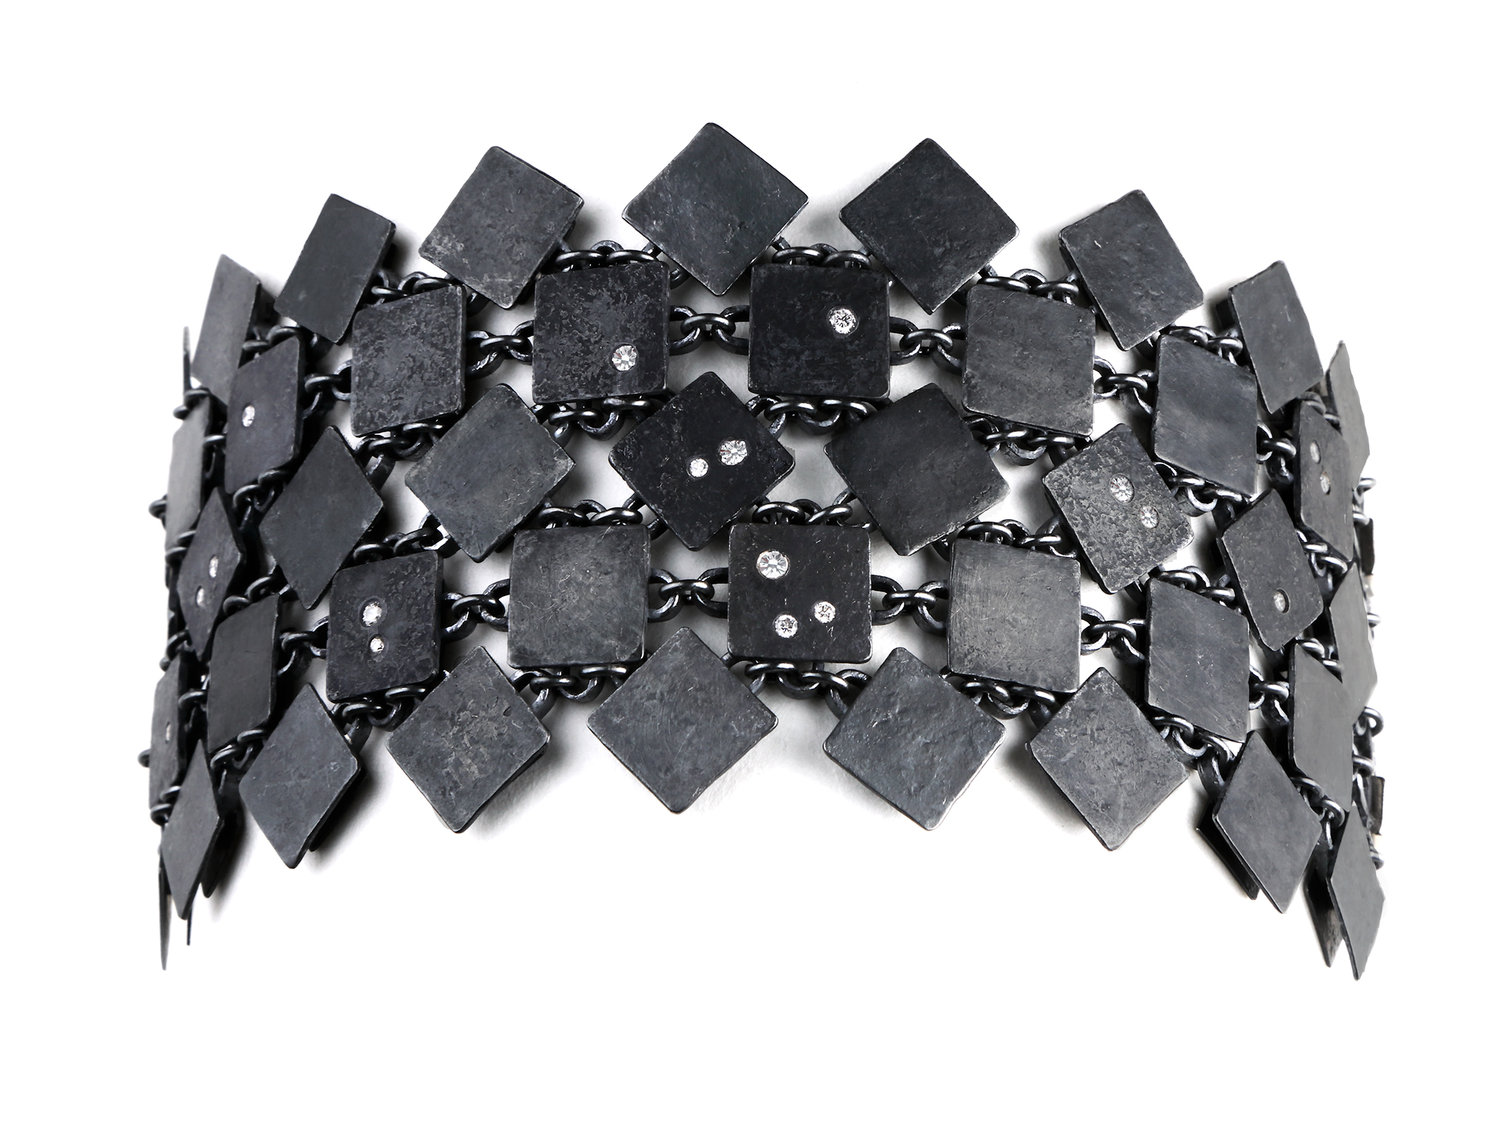 Biba Schutz, Art Jewelry, Bracelet, Silver, Diamonds, Square, Chain, Wearable, Sherrie Gallerie